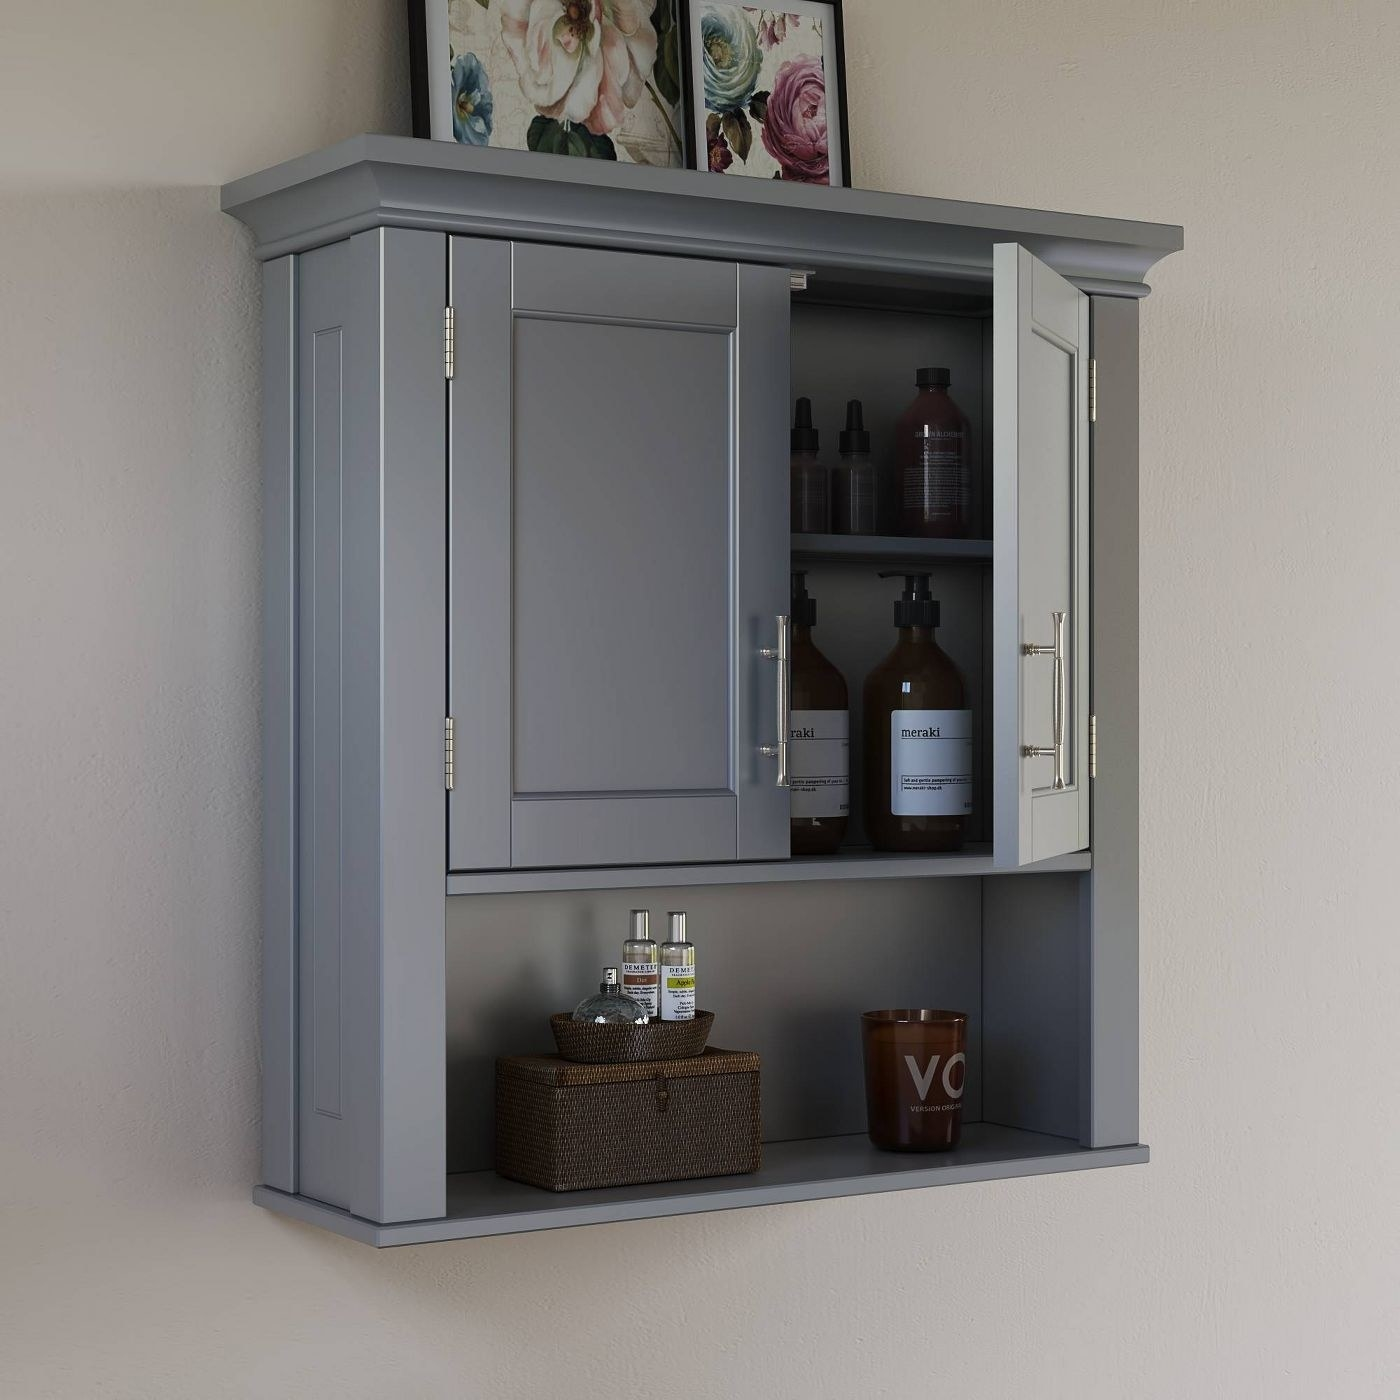 Gray two door wall cabinet with bottles stored inside